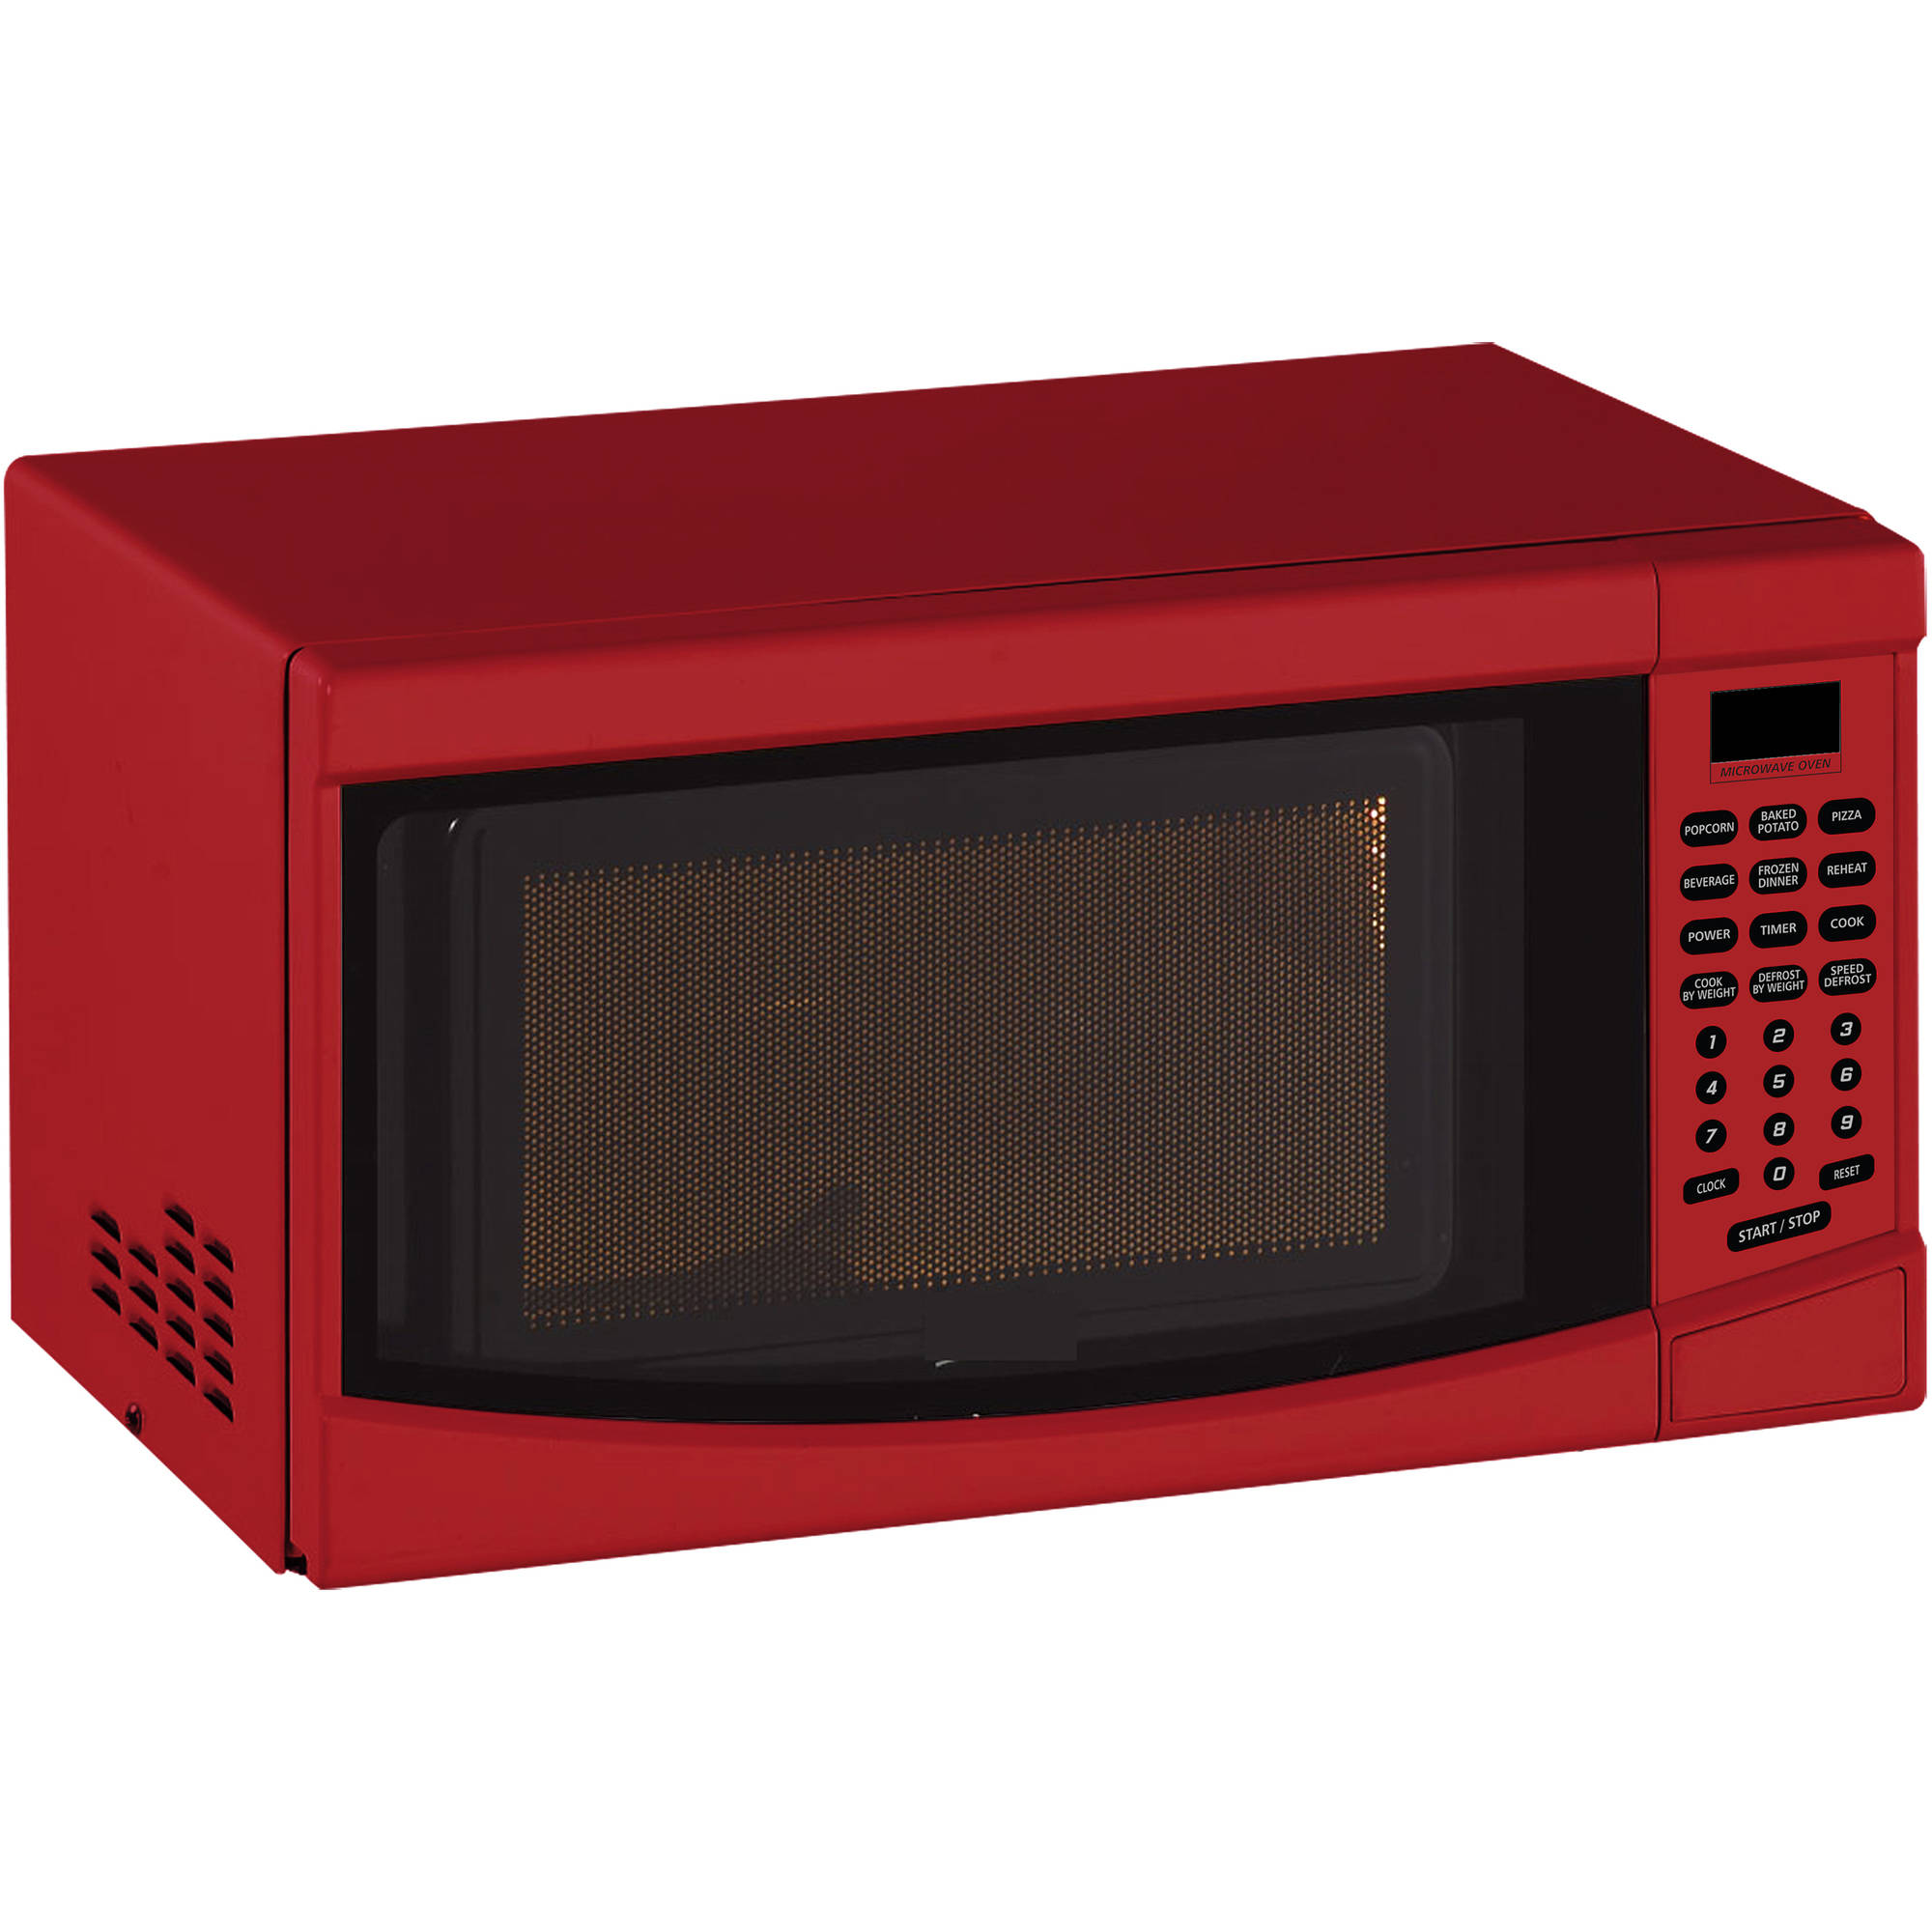 Image of .7 CuFt Microwave Oven Red